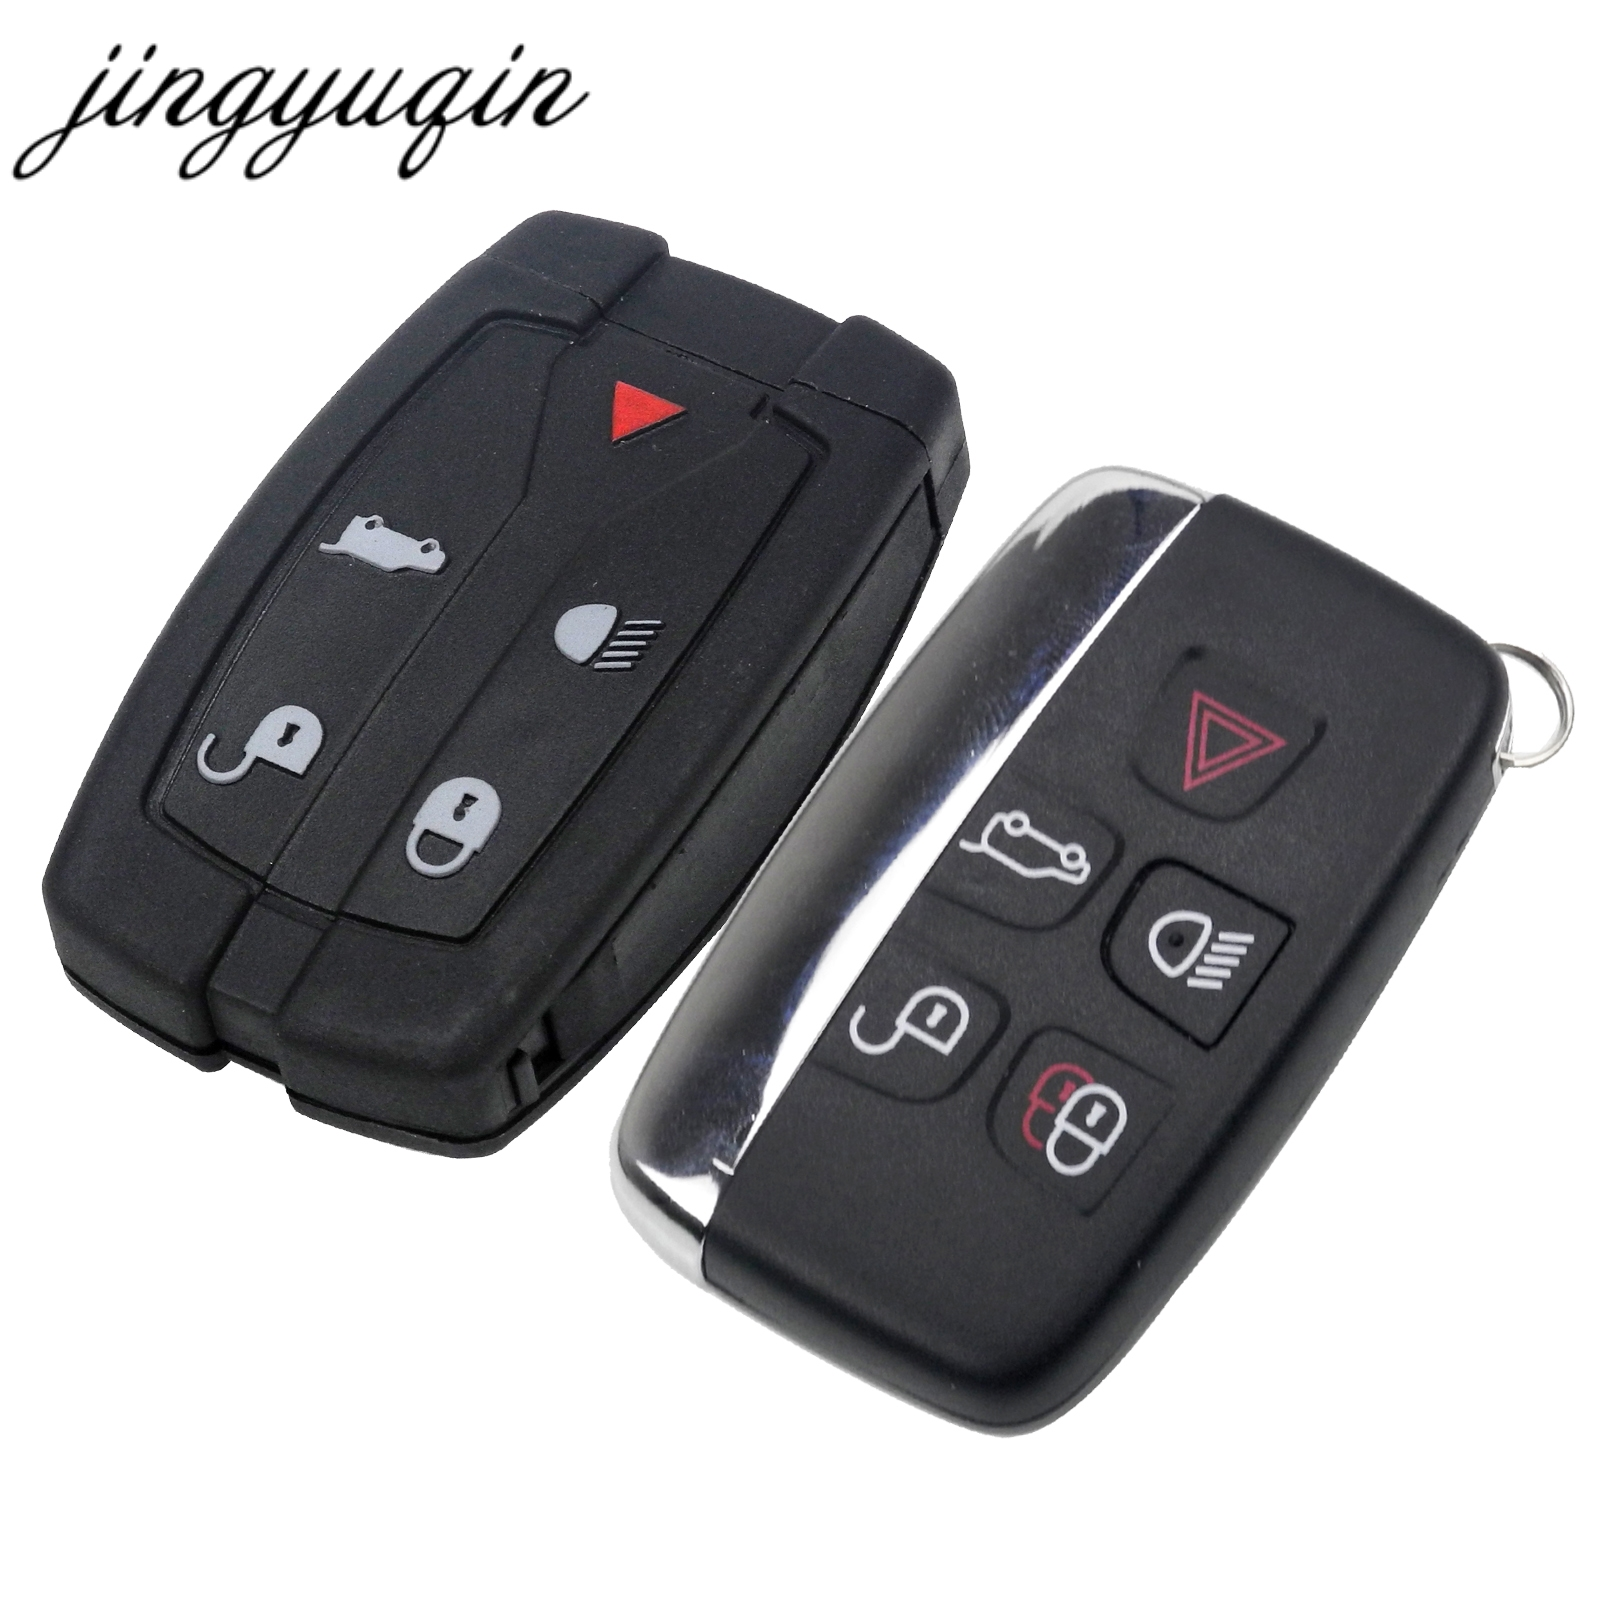 jingyuqin 10pcs 5 Button Remote Key Shell Fob Case Fit For Land Rover Freelander 2 3